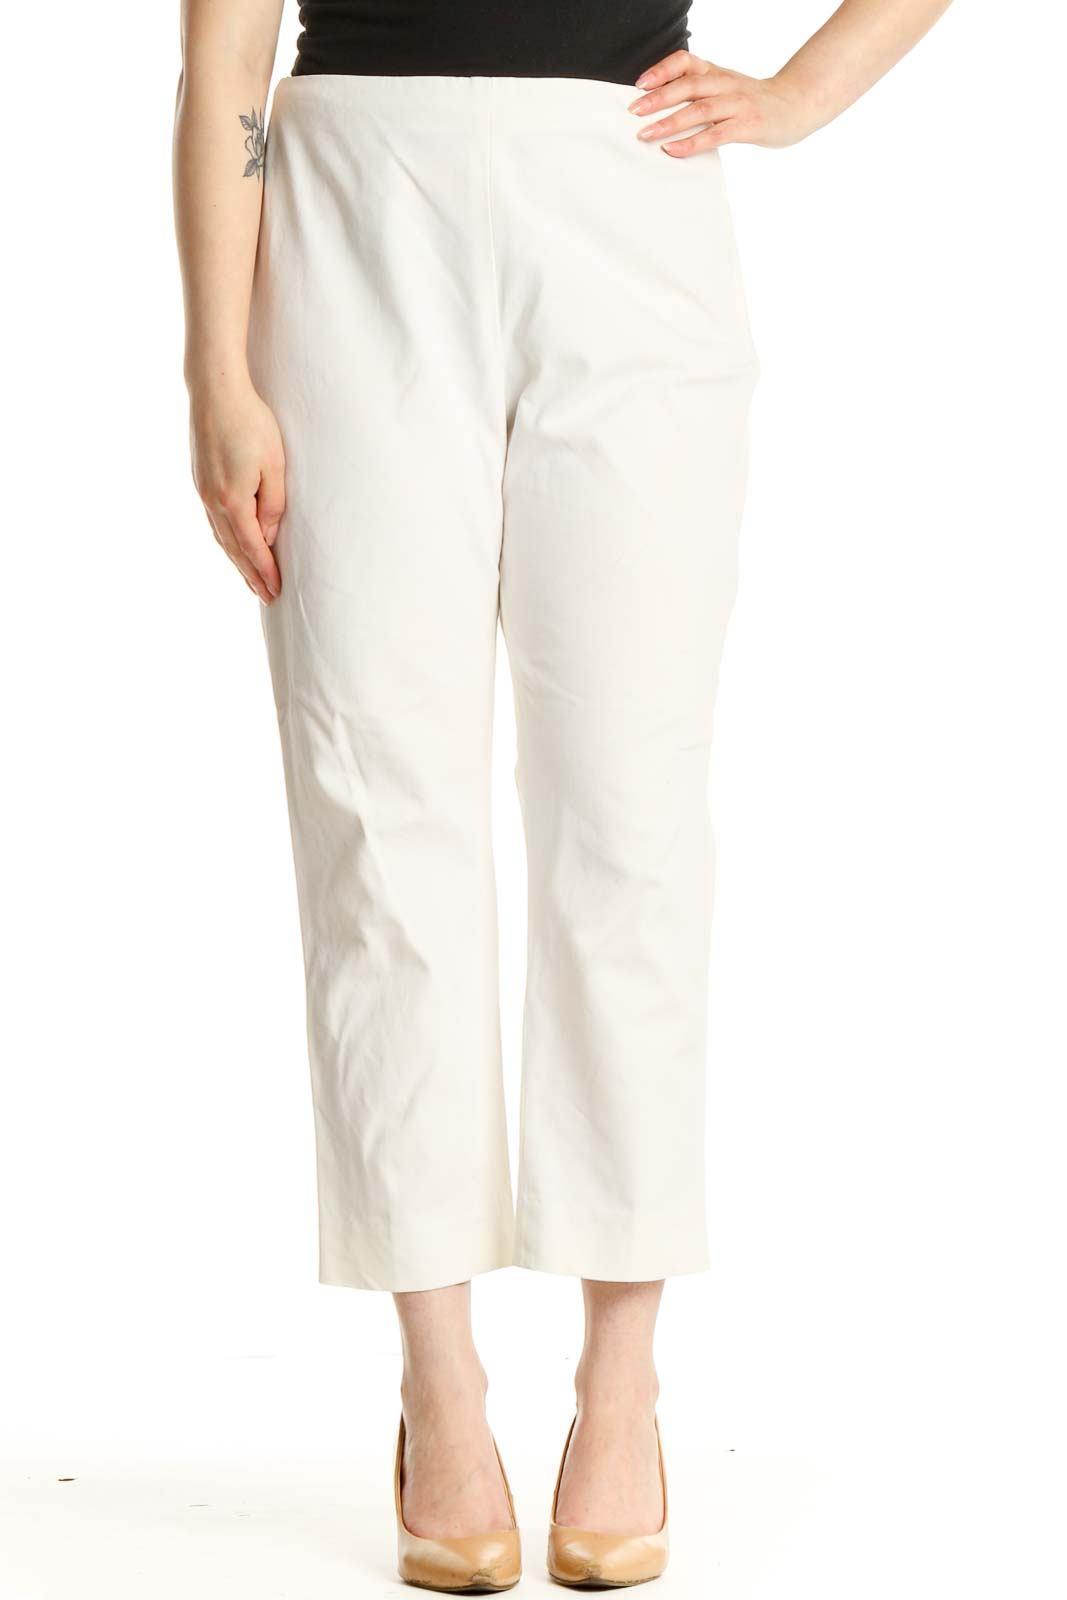 White Solid Casual Trousers Front